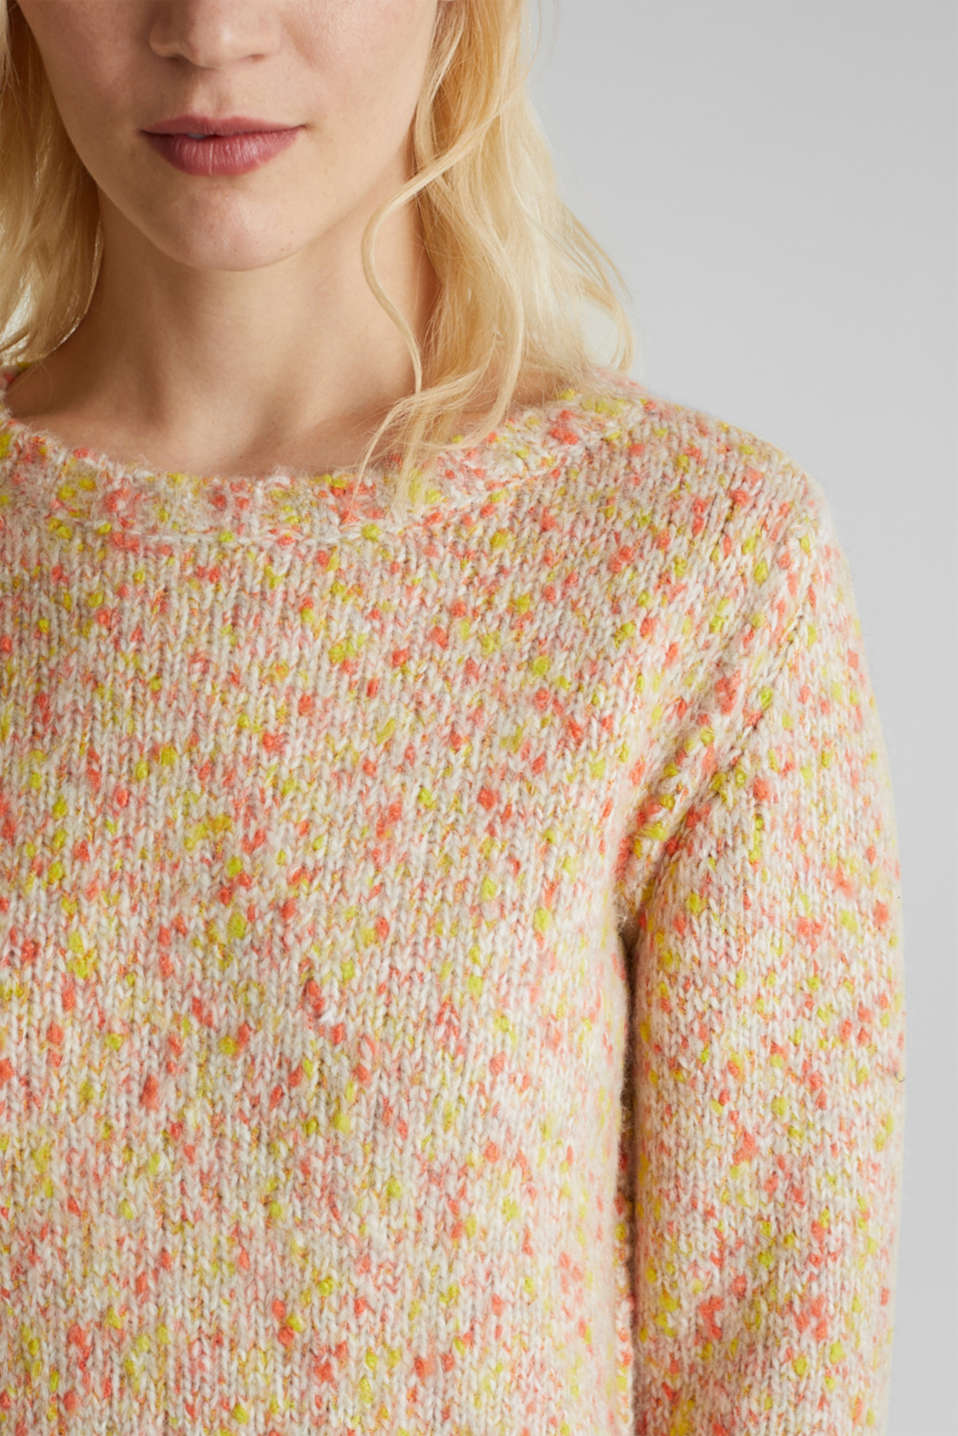 Wool blend: jumper with a dimpled texture